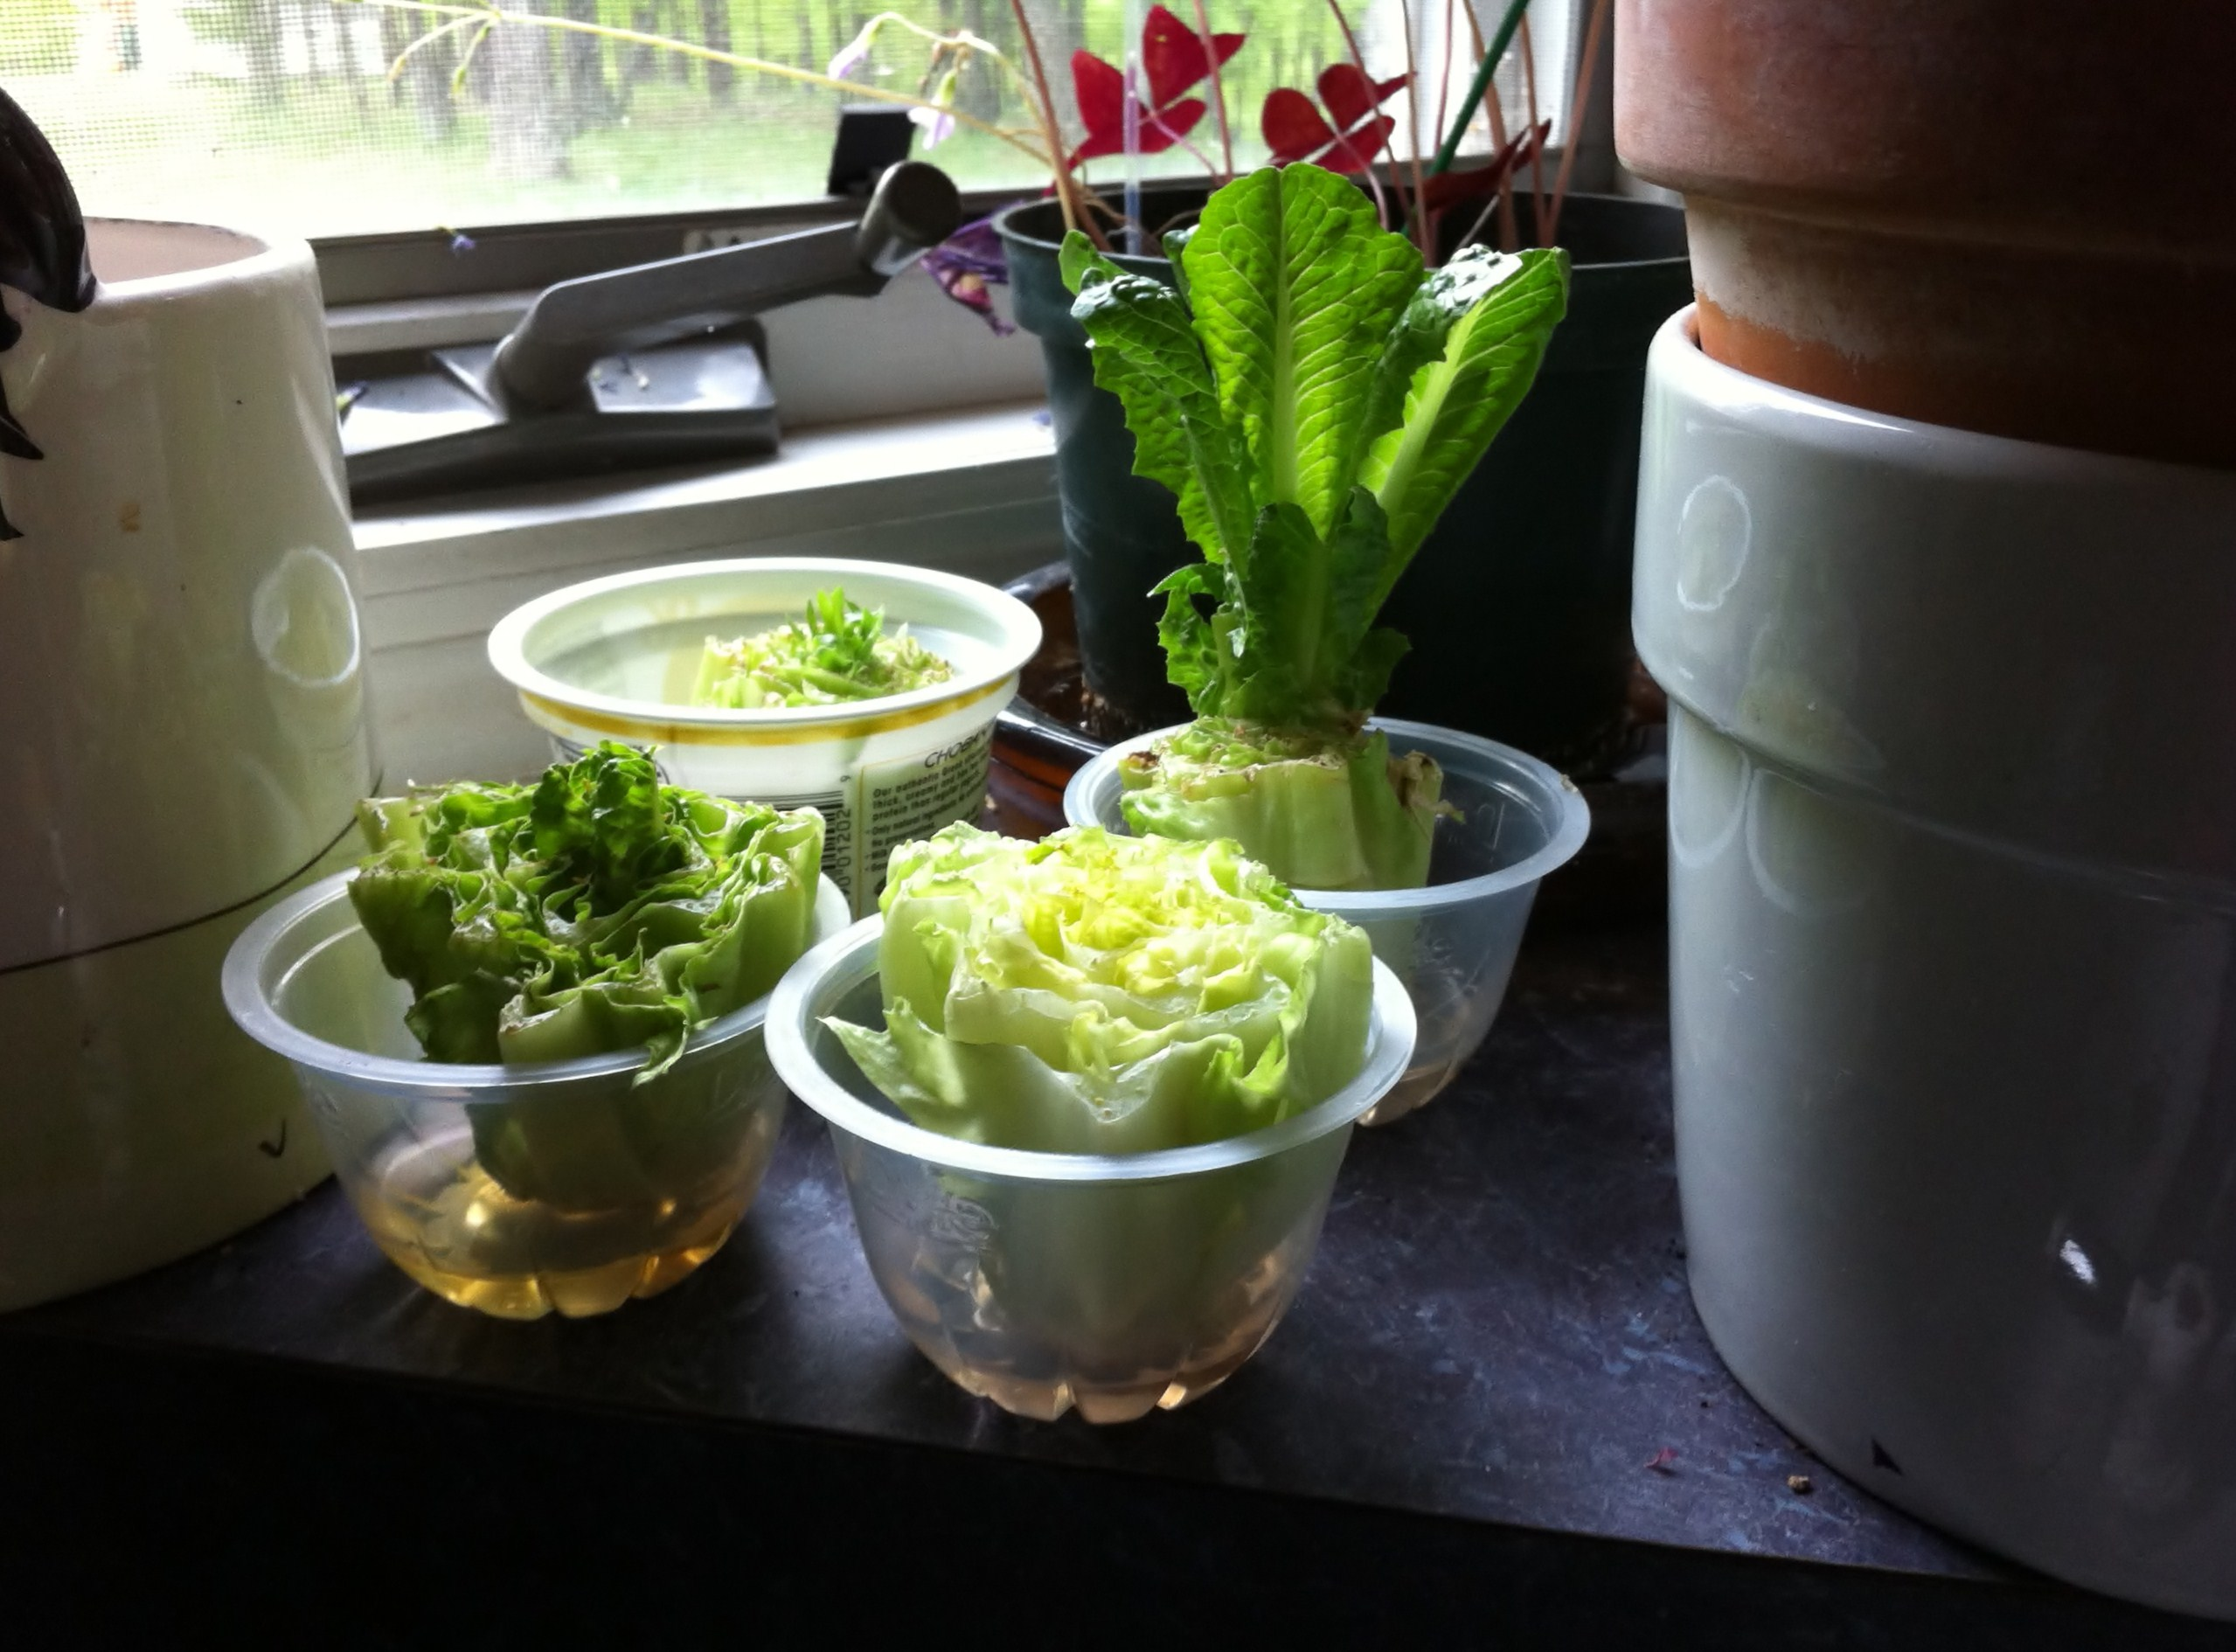 What I Did Was Save The Short Stalk End Of The Romaine Lettuce, Put It In  About A Half Inch Of Water, And Place It In A Sunny Window.